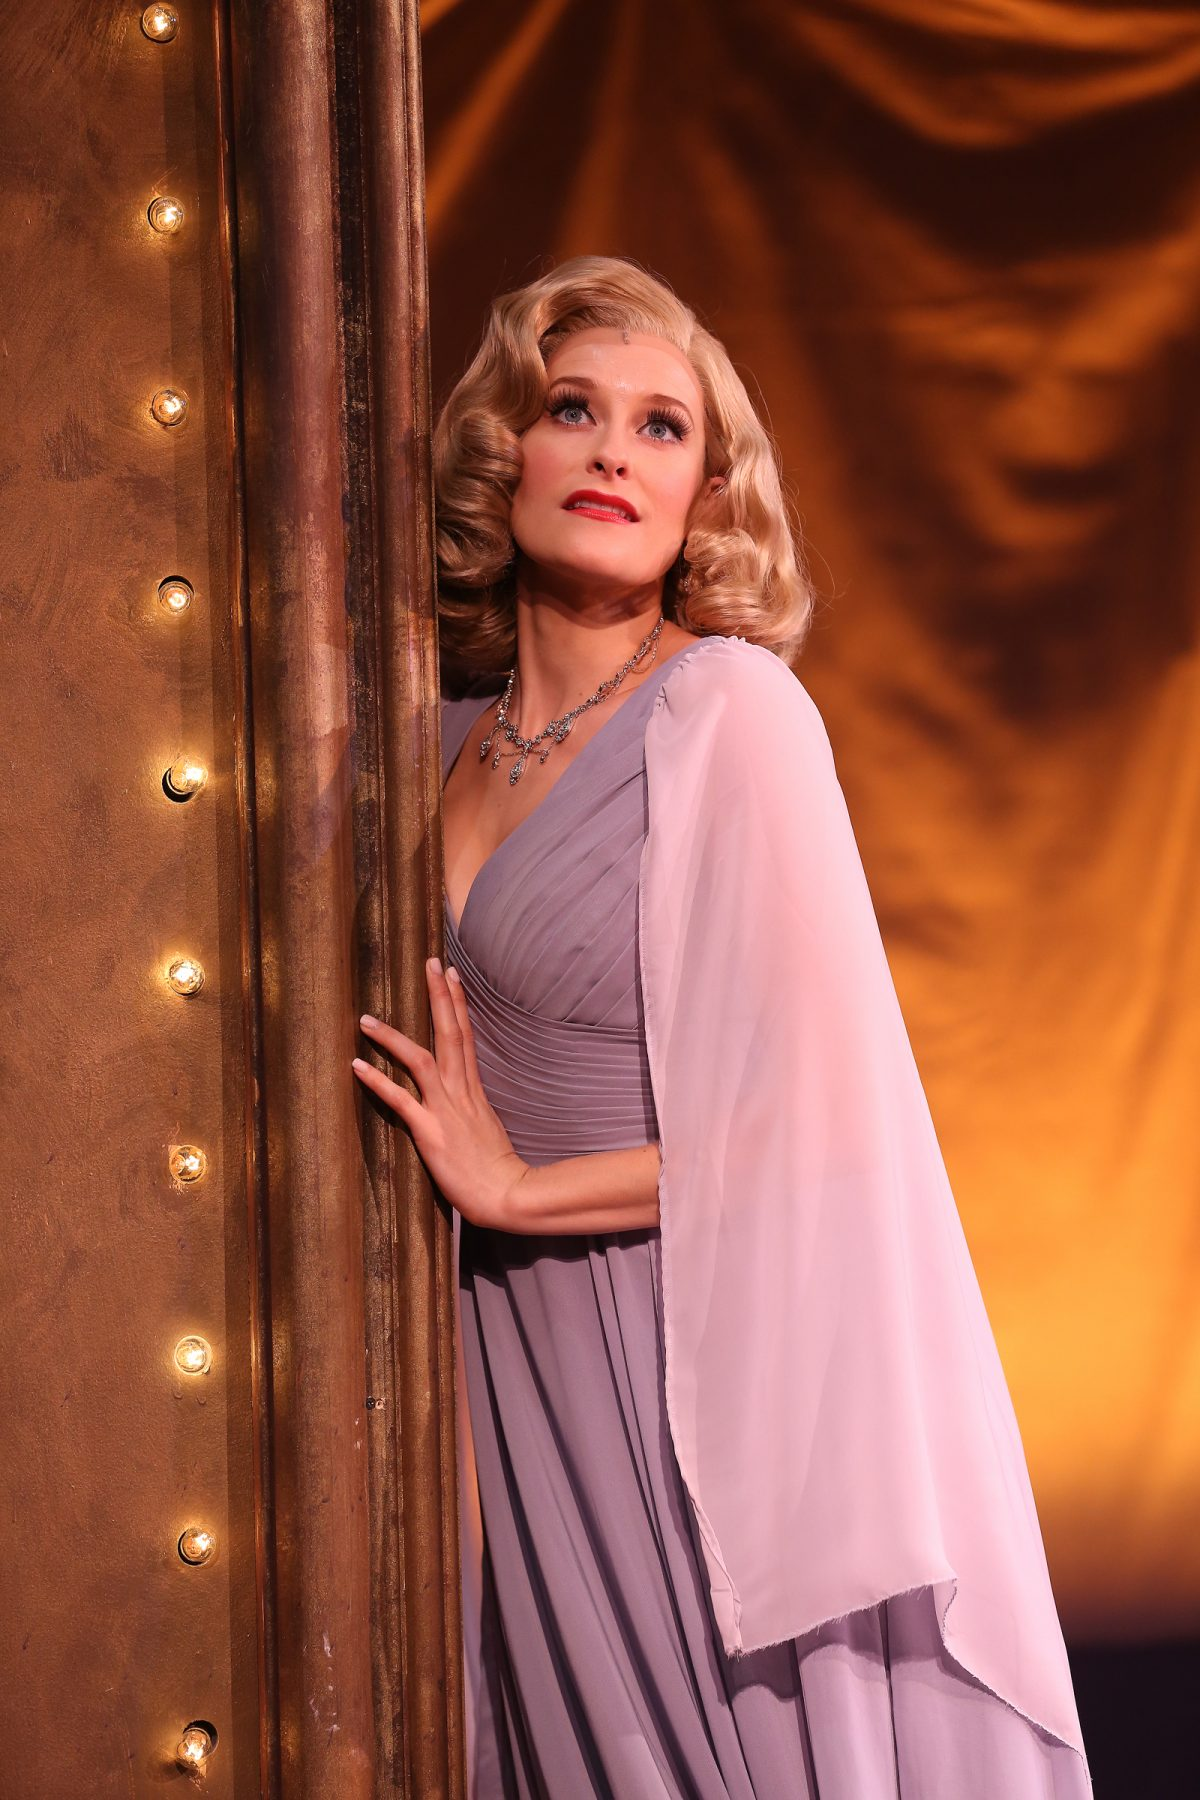 ENTER LAUGHING The glamorous Ms. B played by Dana Costello